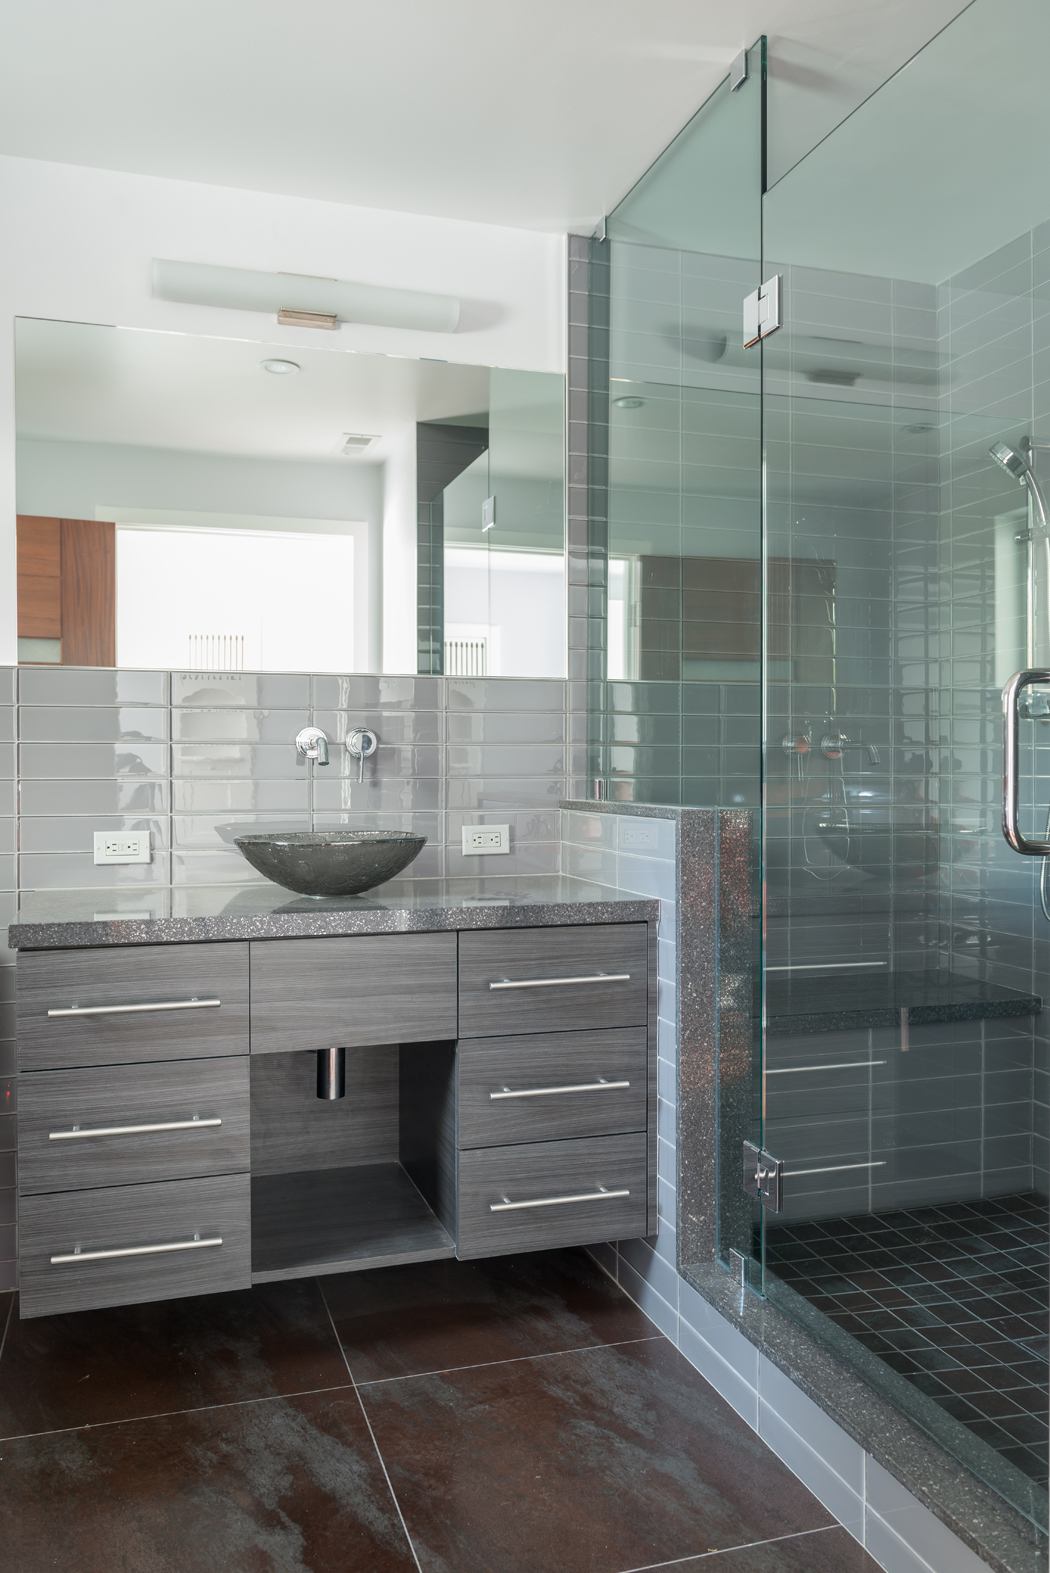 Modern Bath Cabinetry designed and built in our woodshop!